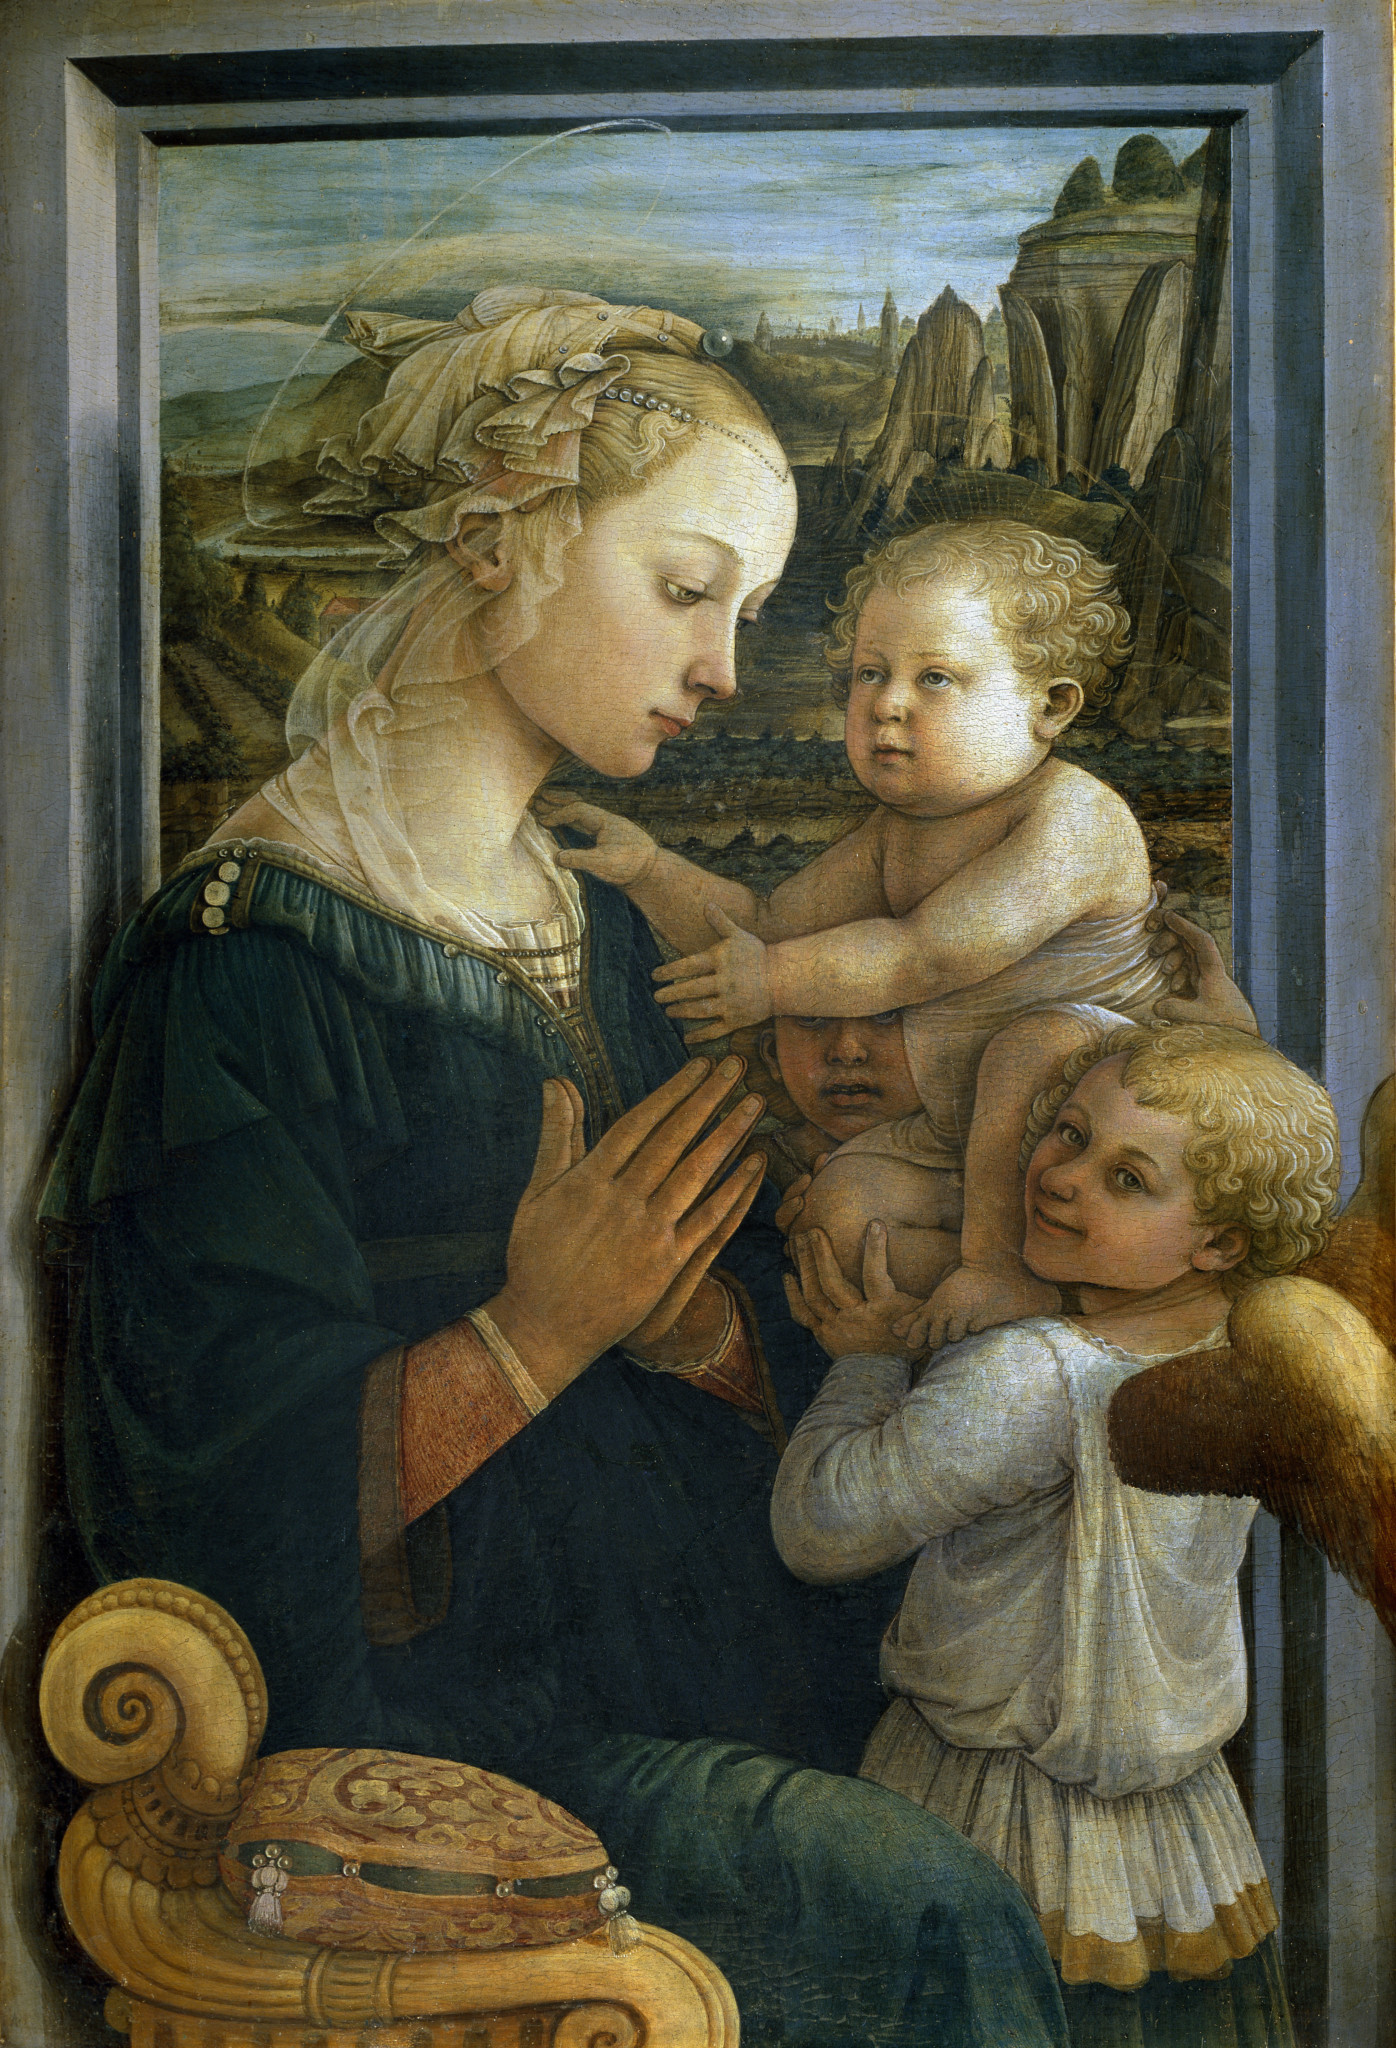 Madonna with the Child and two Angels, Filippo Lippi, 1406–1469, Uffizi Gallery, Florence, Italy. Luisa Ricciarini | Leemage